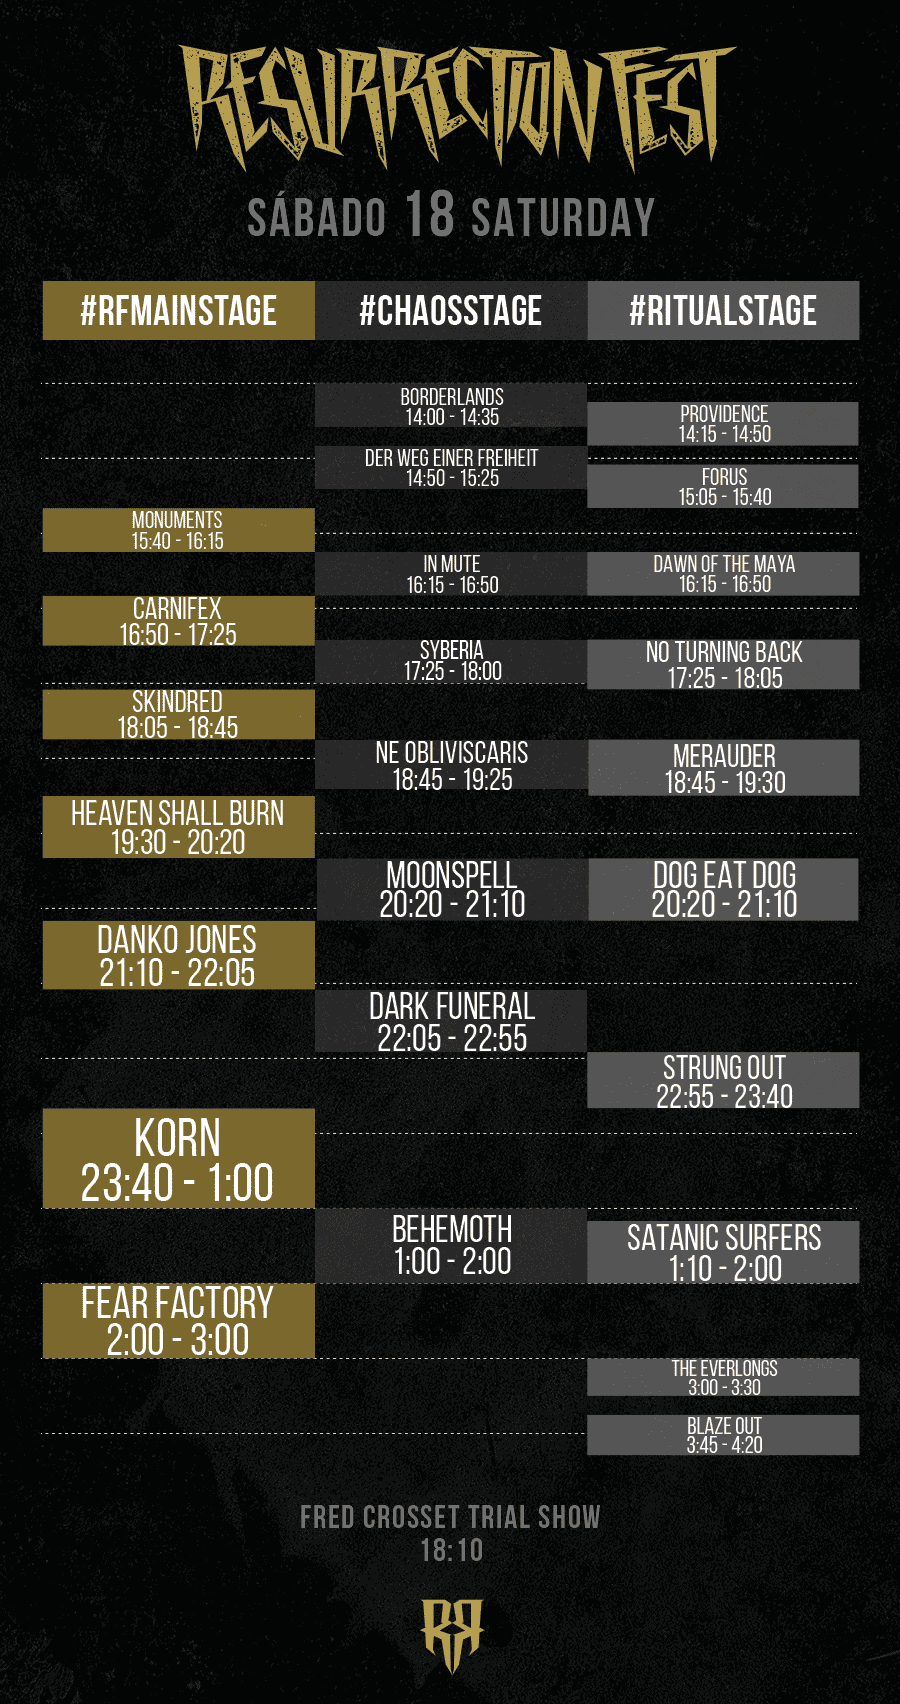 Resurrection Fest 2015 - Running Order - 18